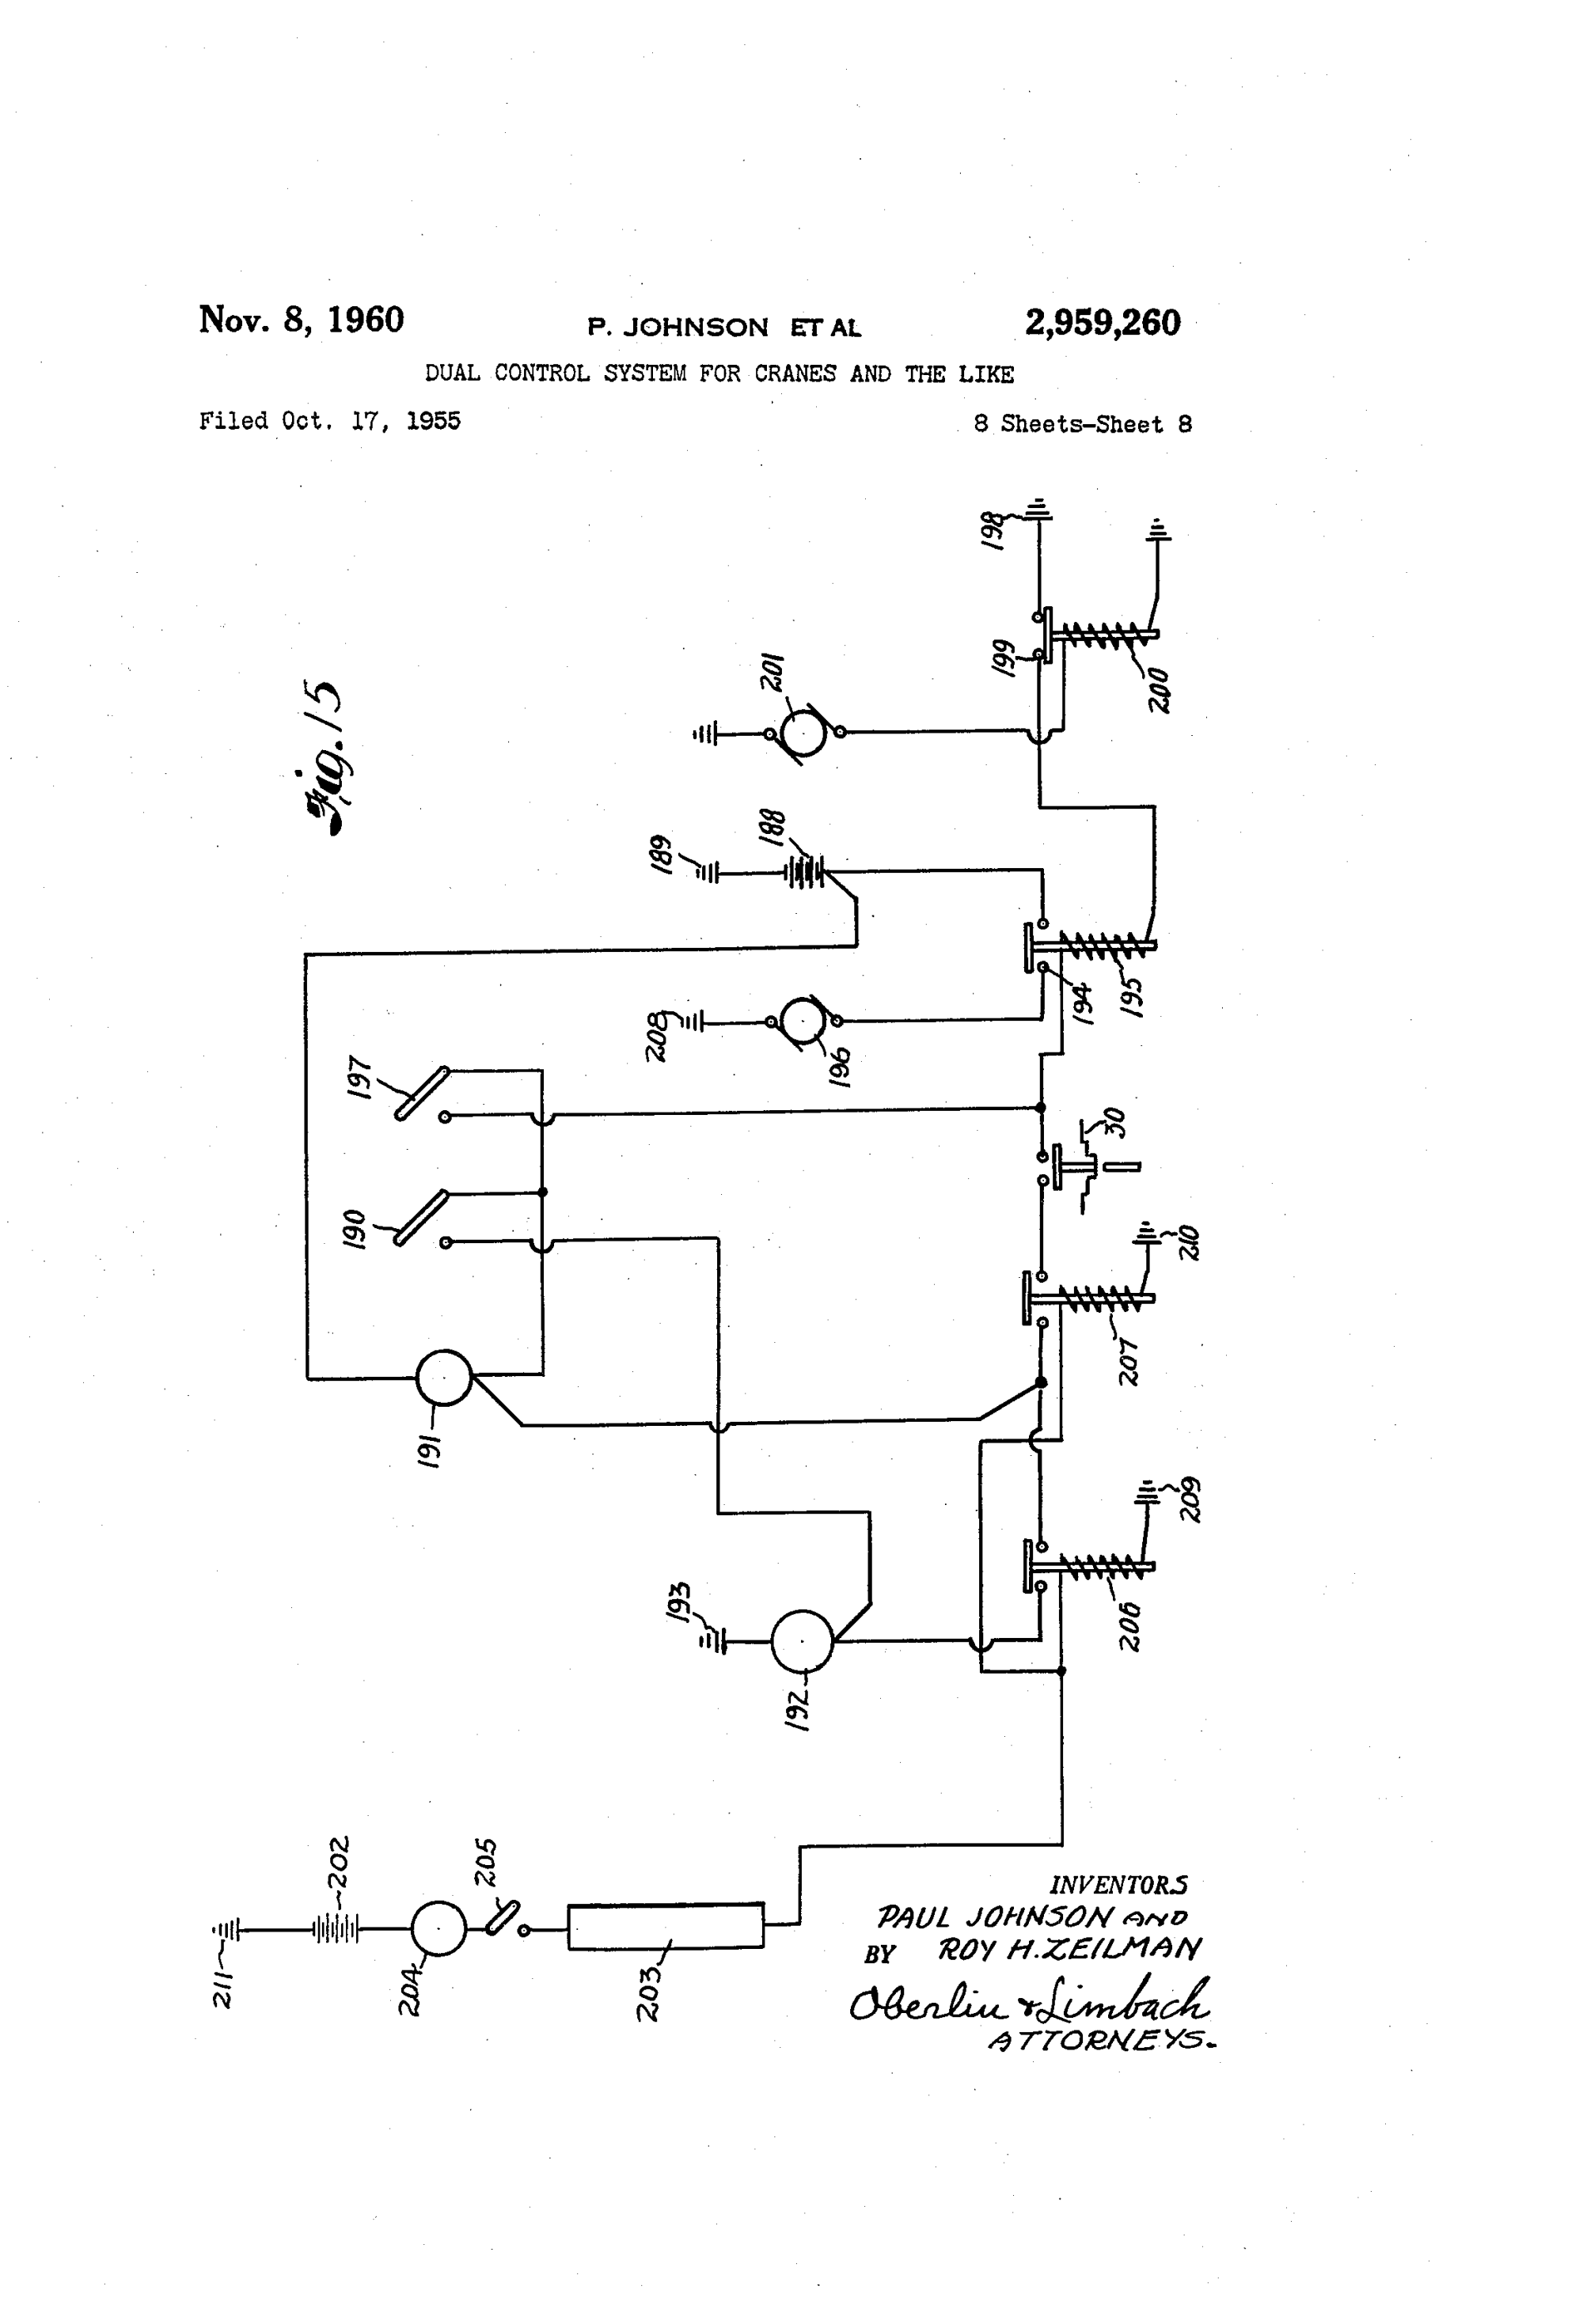 hight resolution of us2959260 7 patent us2959260 dual control system for cranes and the like ze 208s wiring diagram